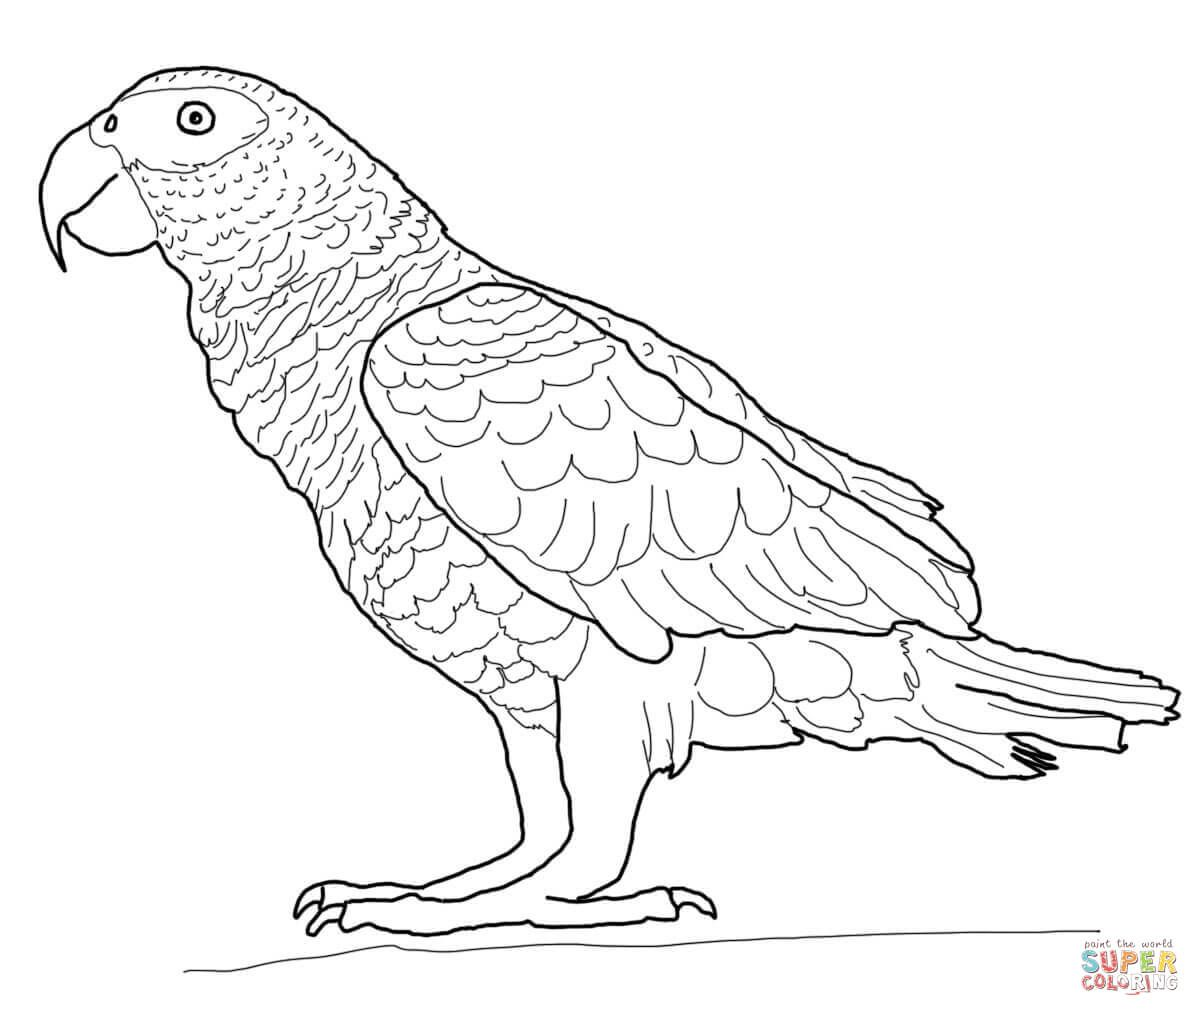 Parrots Coloring Pages Free Coloring Pages African Grey Parrot Coloring Pages Parrots Art